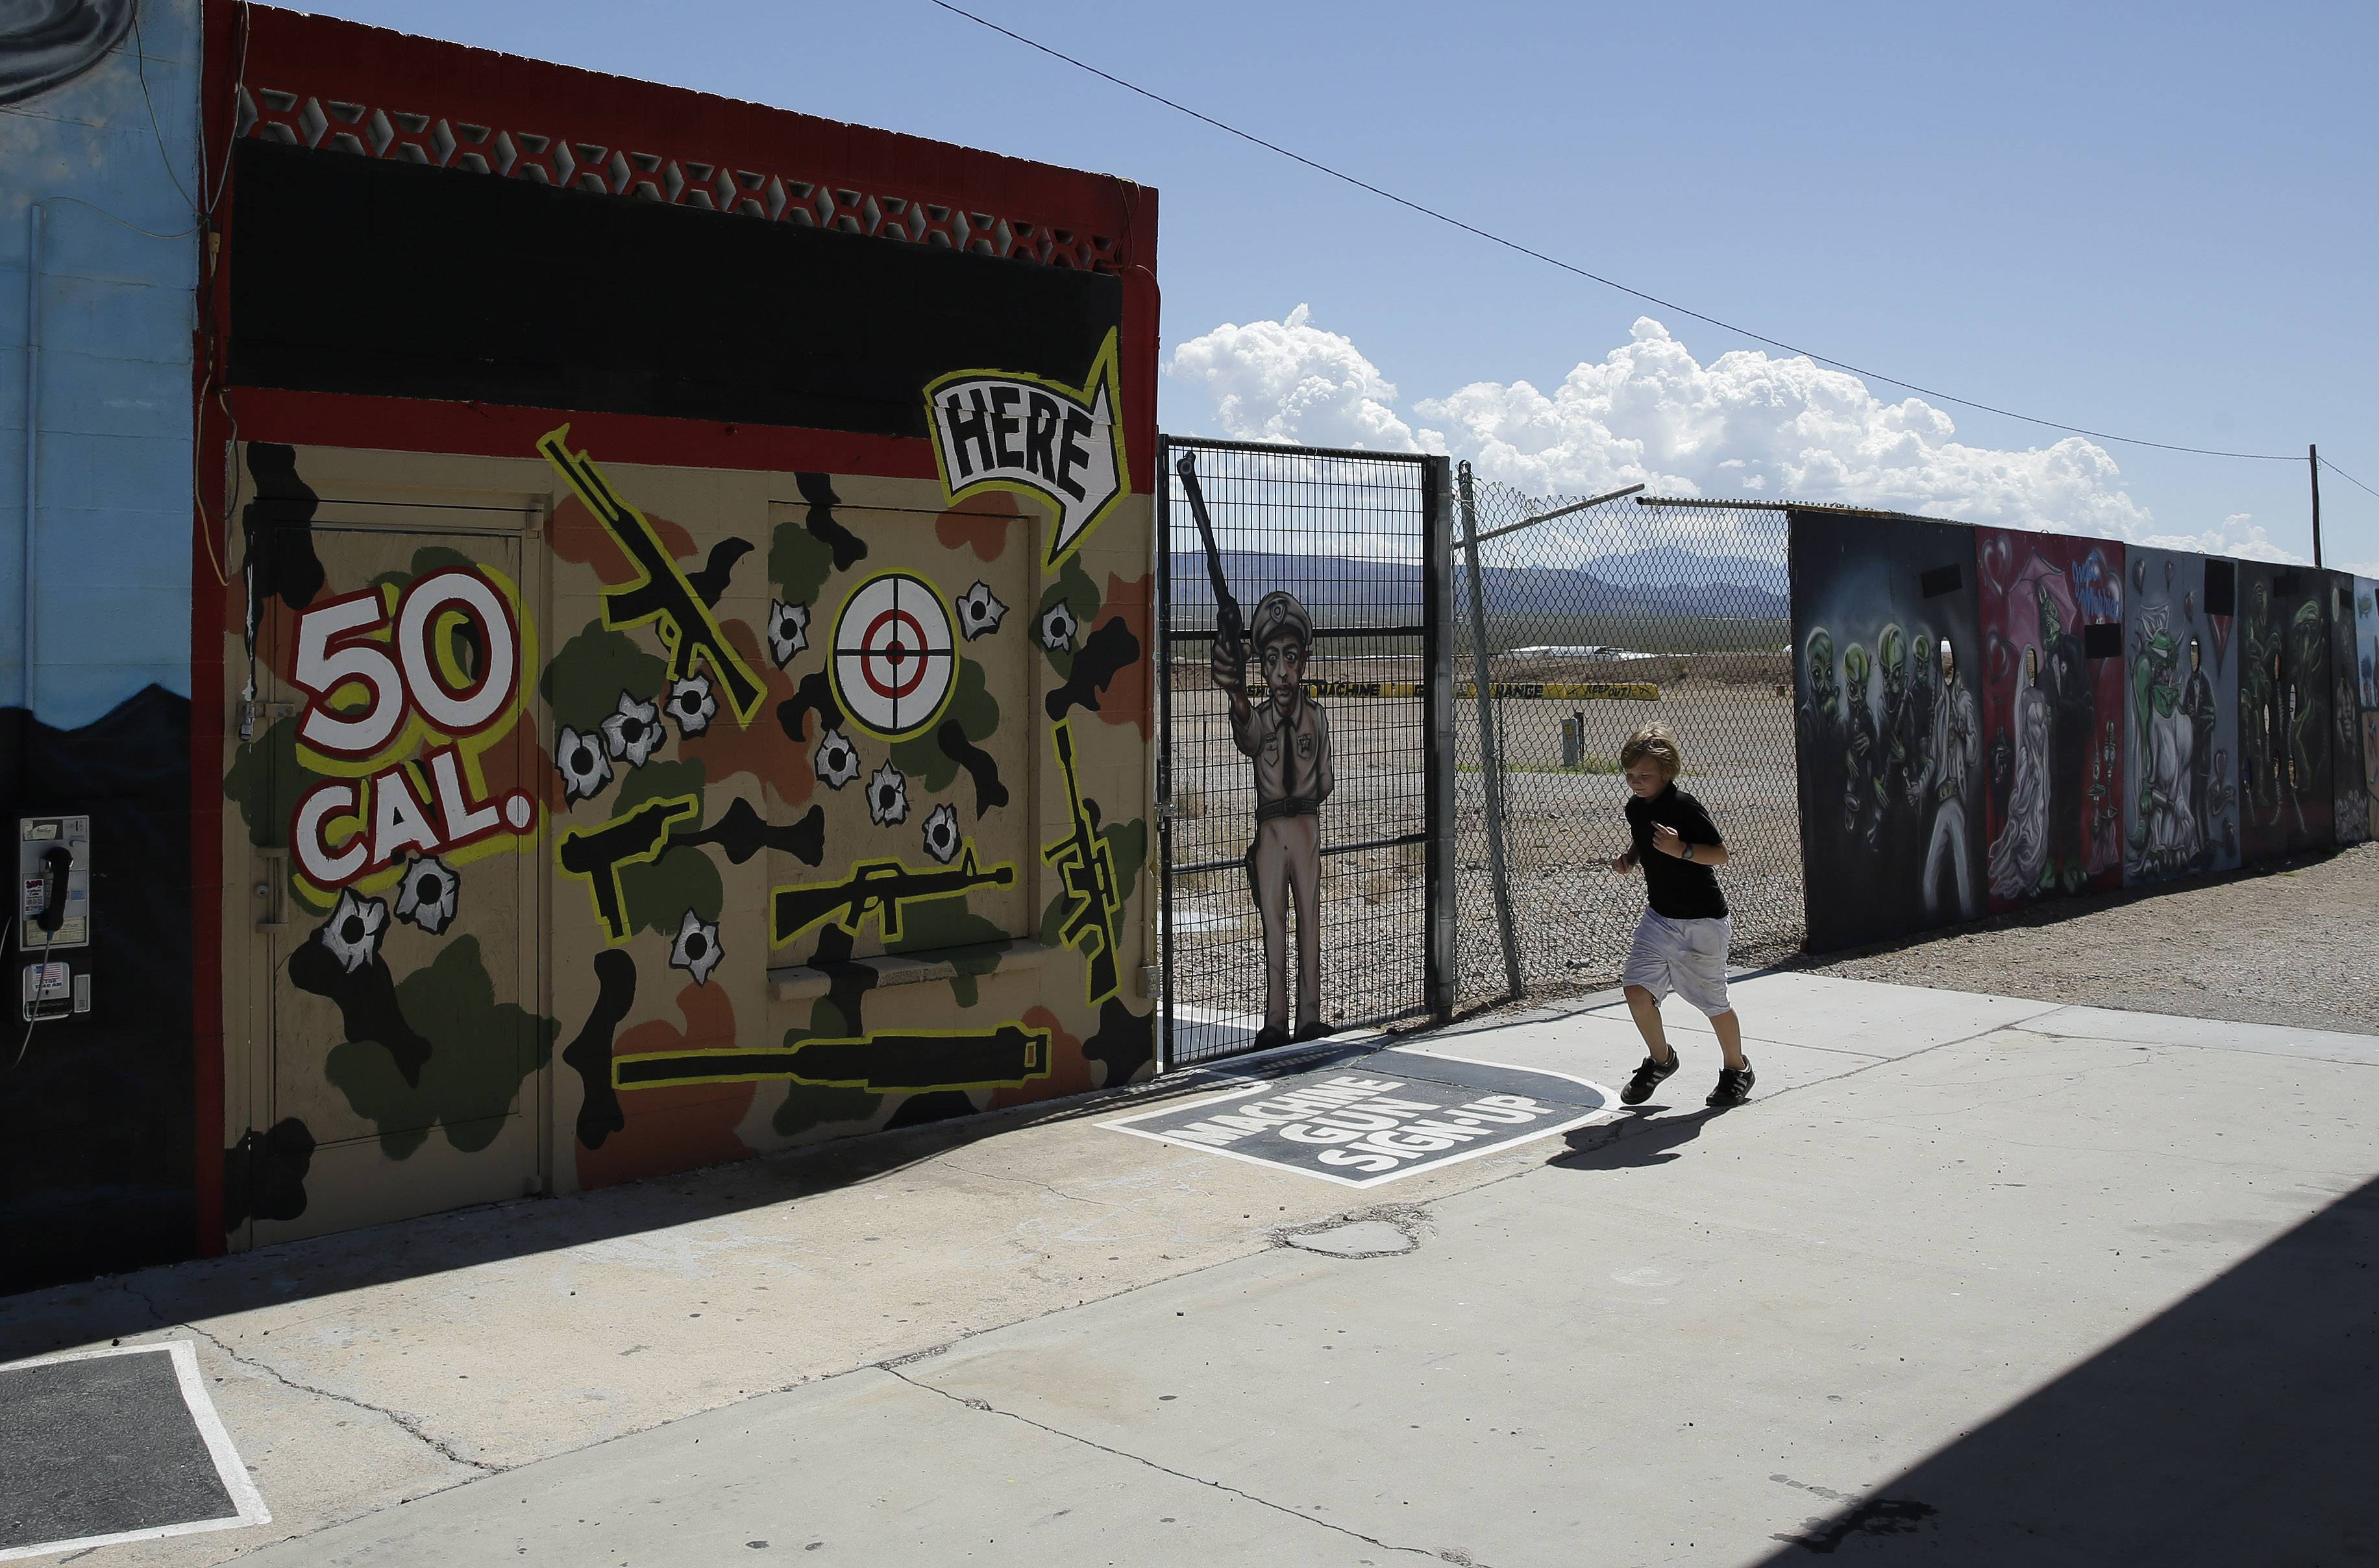 A young person runs by the Last Stop outdoor shooting range Wednesday, Aug. 27, 2014, in White Hills, Ariz. Gun range instructor Charles Vacca was accidentally killed Monday, Aug. 25, 2014 at the range by a 9-year-old with an Uzi submachine gun.